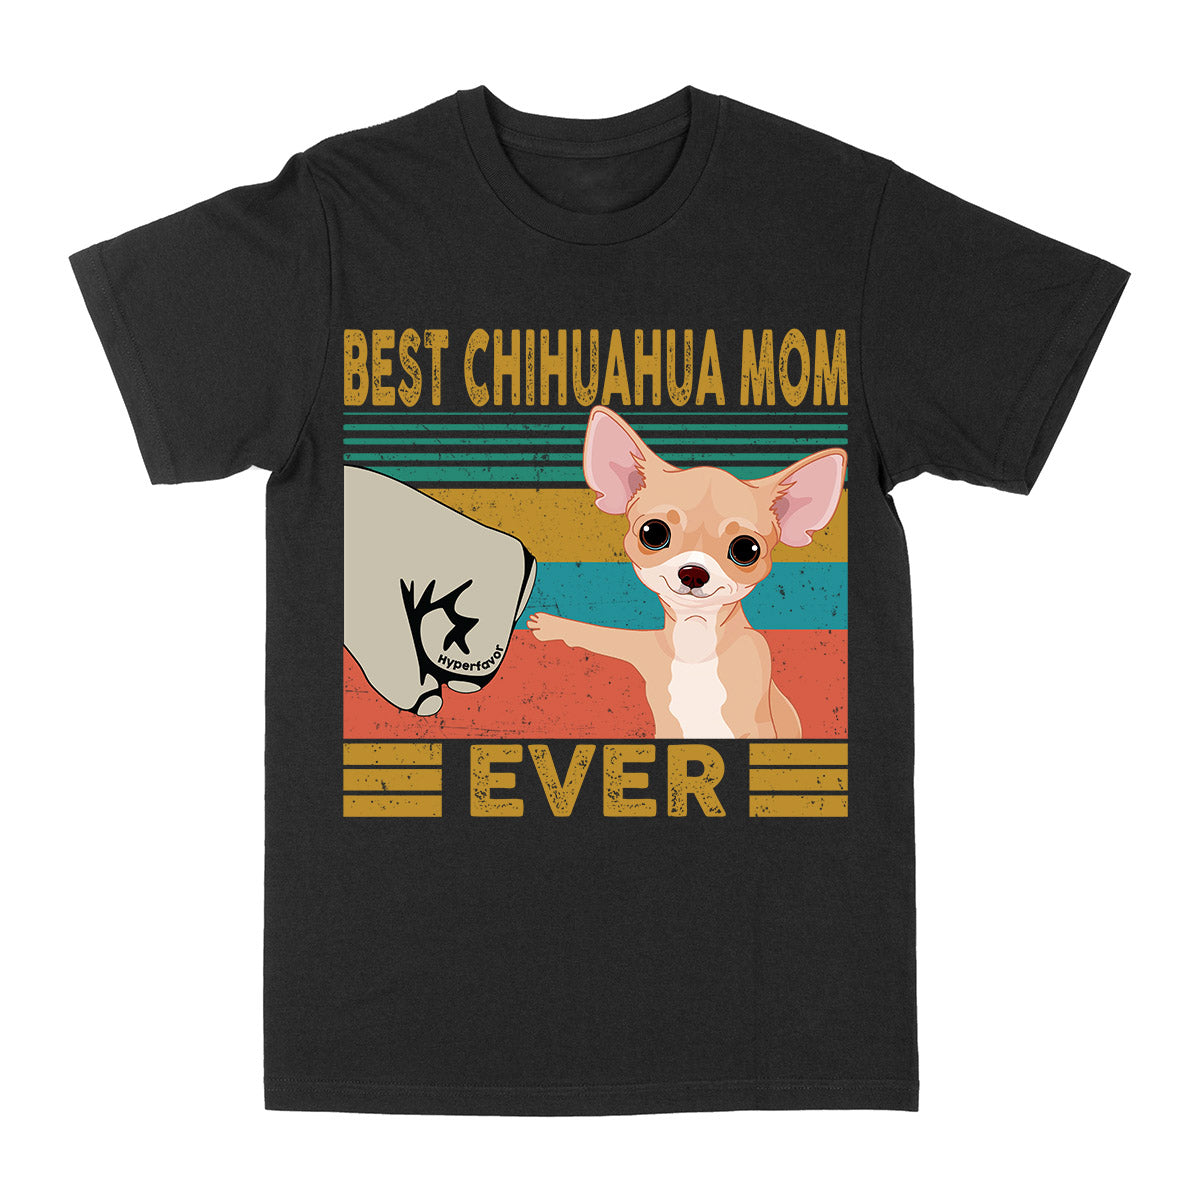 Best Chihuahua Mom Ever Vintage EZ03 2703 Classic T-shirt